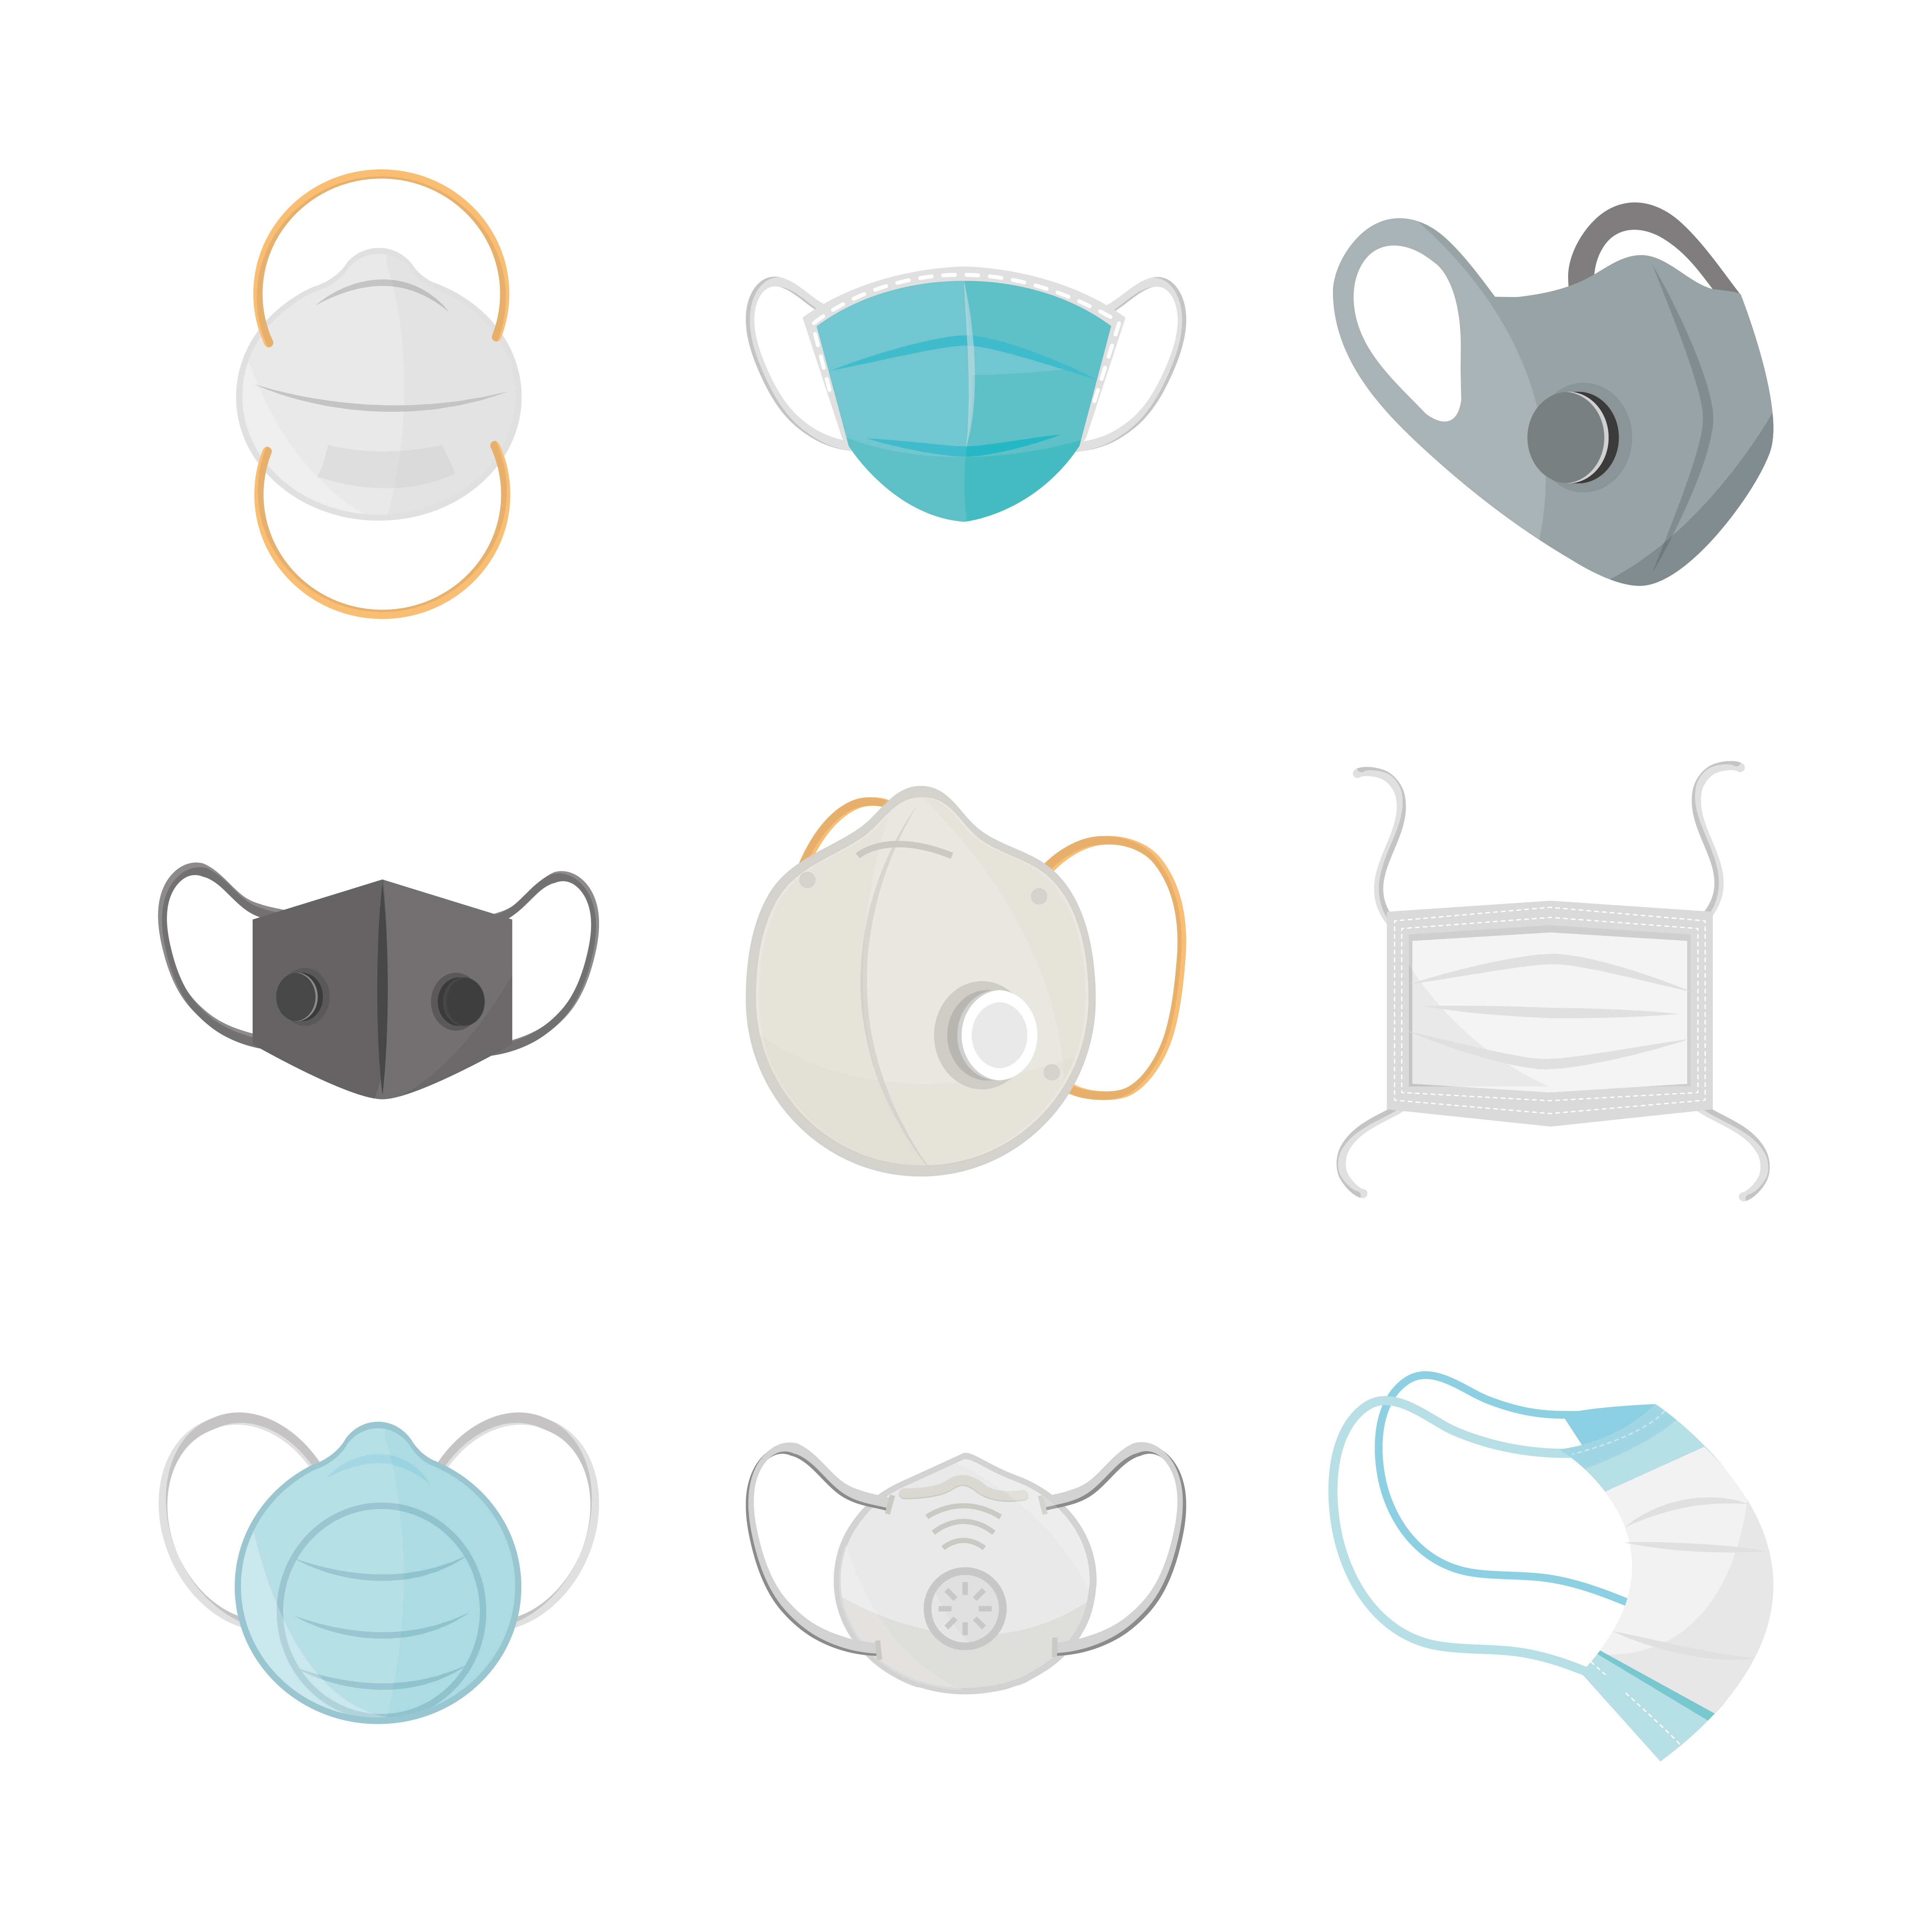 Face masks icon set